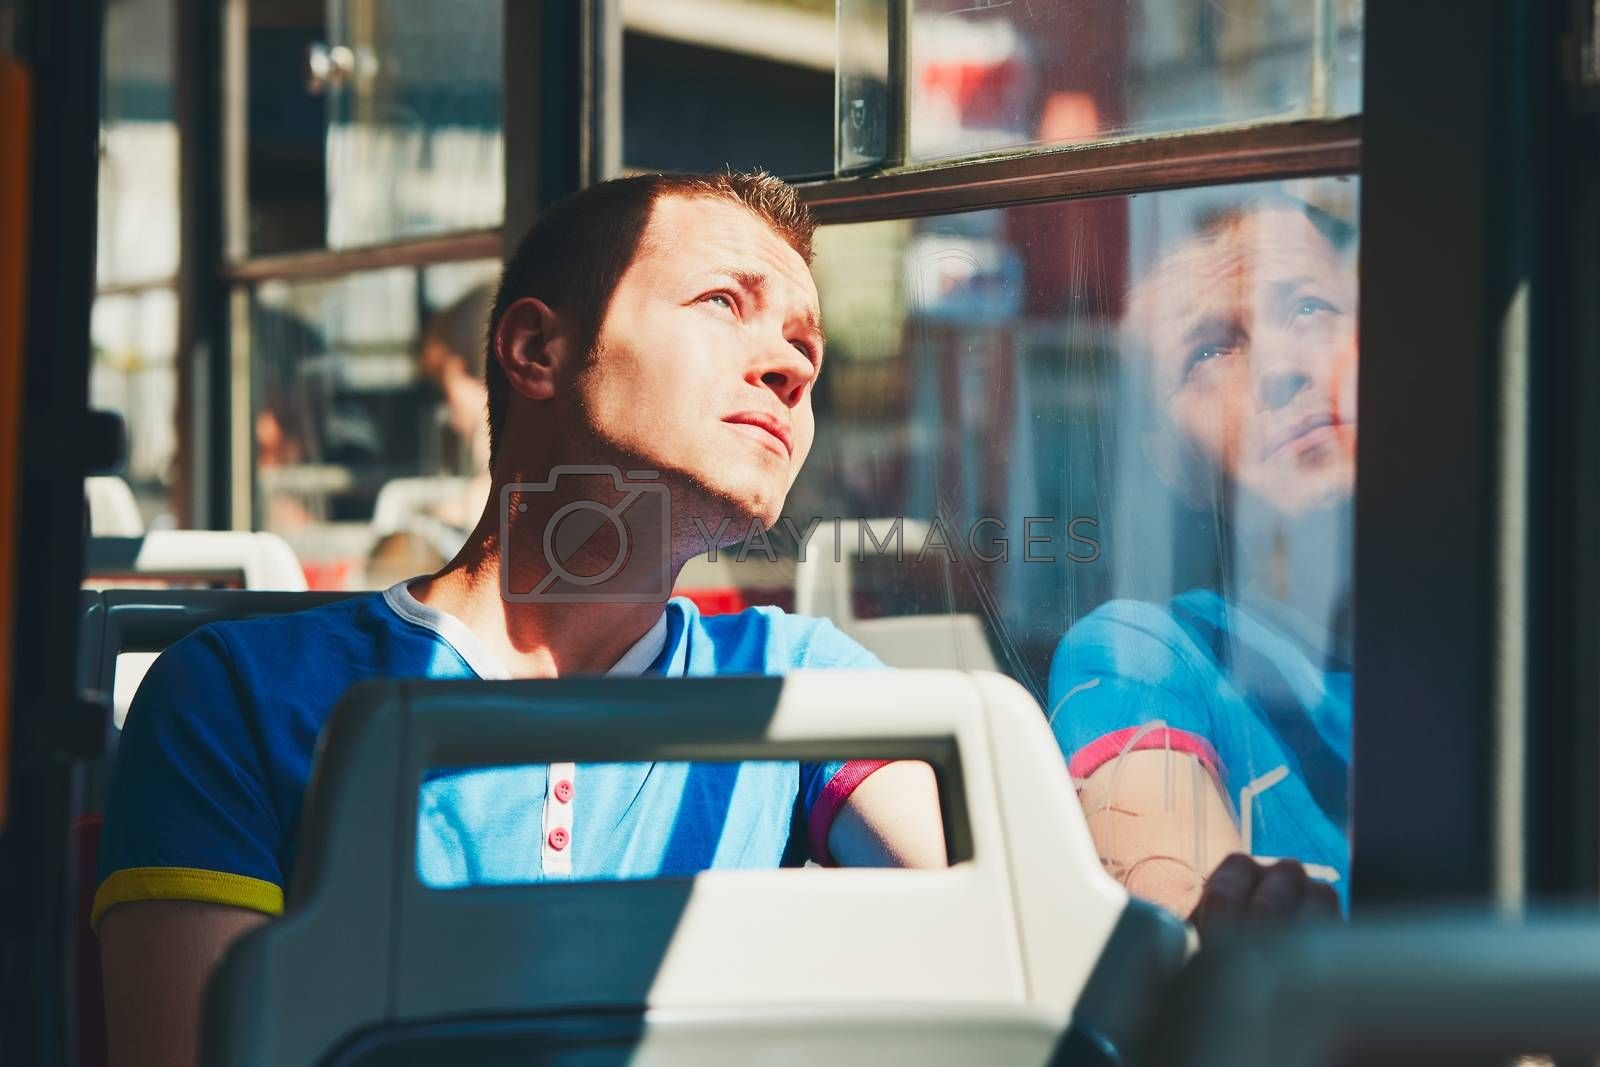 Everyday life and commuting to work by public transportation. Handsome young man is traveling by tram (bus).